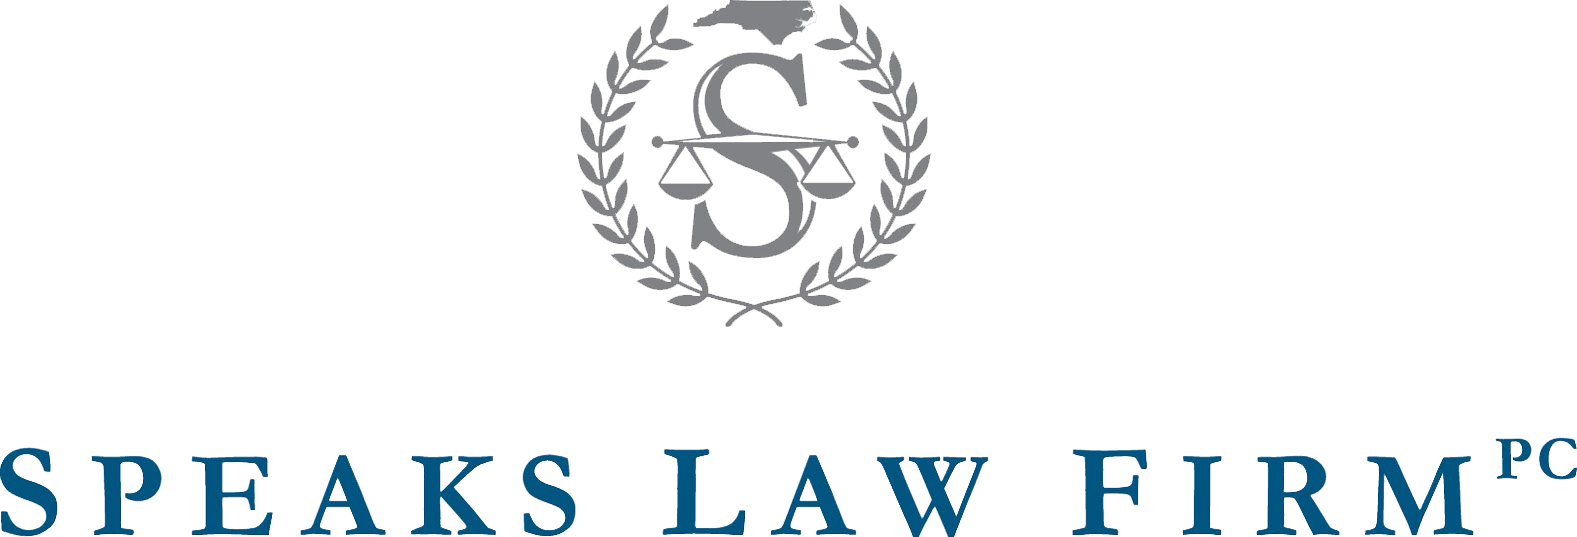 Local Personal Injury Law Firm Awards Scholarships to Deserving Students in North Carolina